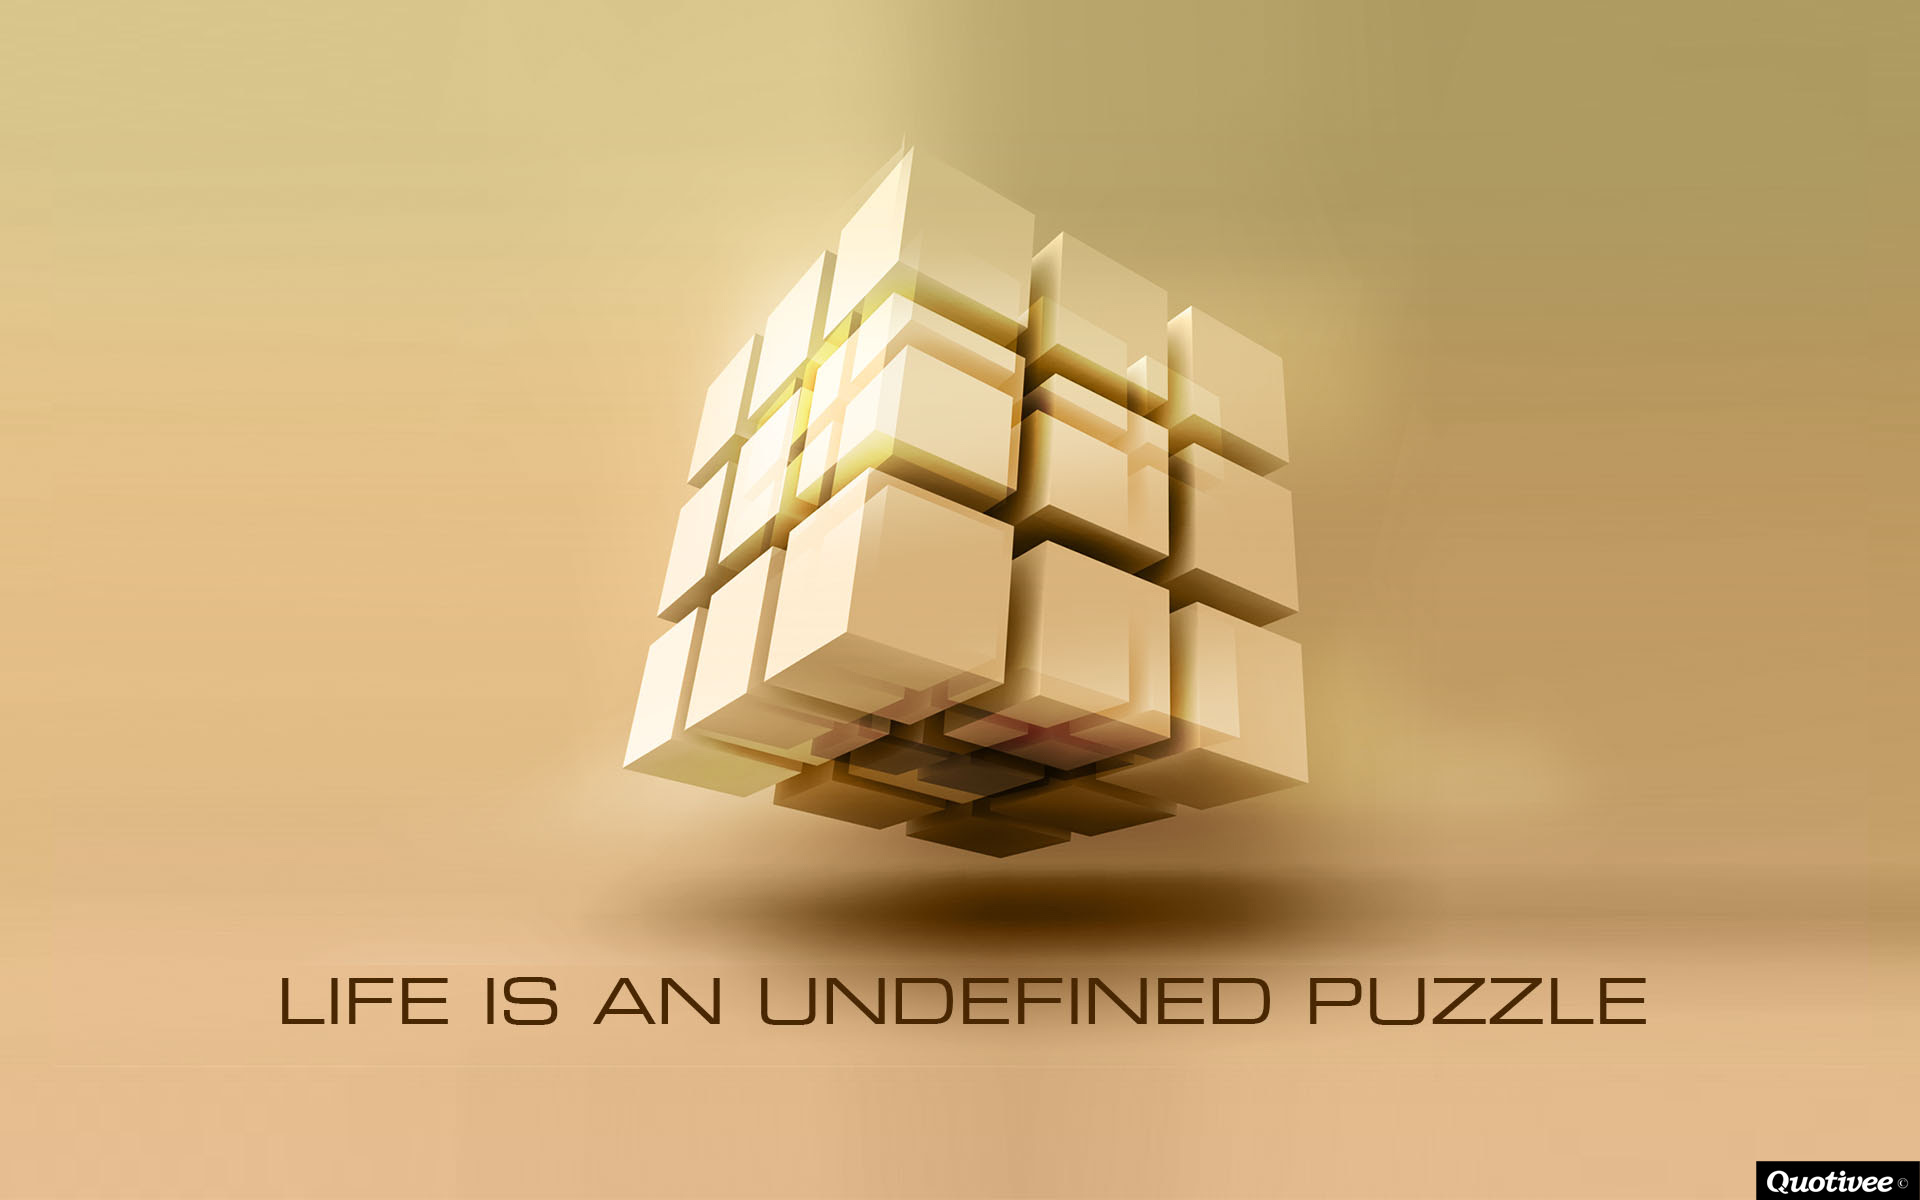 Life Is An Undefined Puzzle Inspirational Quotes Quotivee